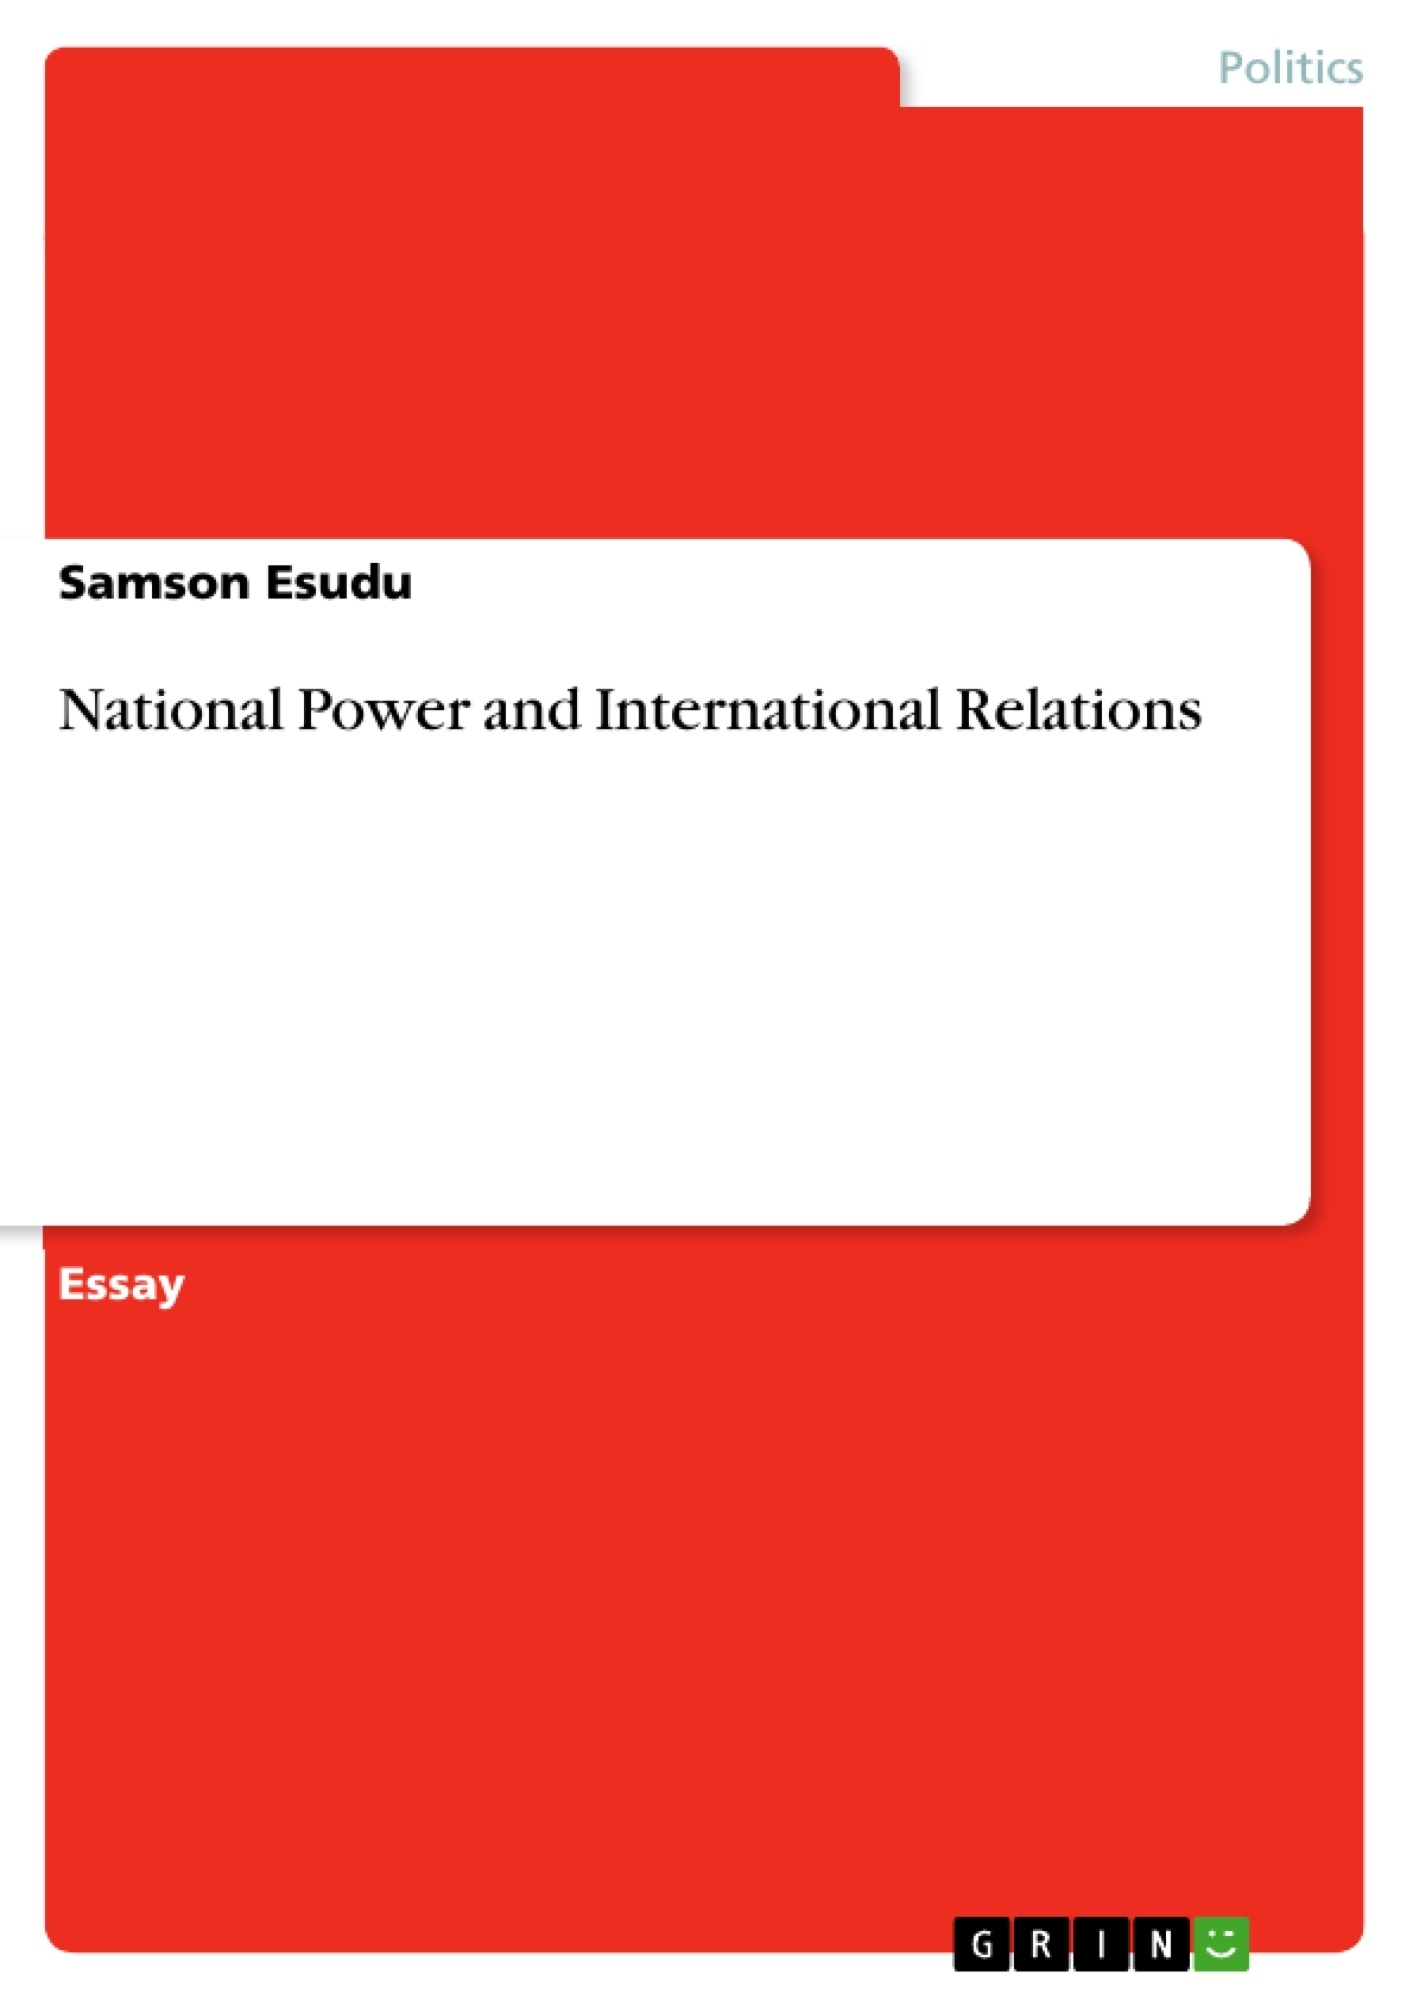 national power and international relations publish your master s upload your own papers earn money and win an iphone 7